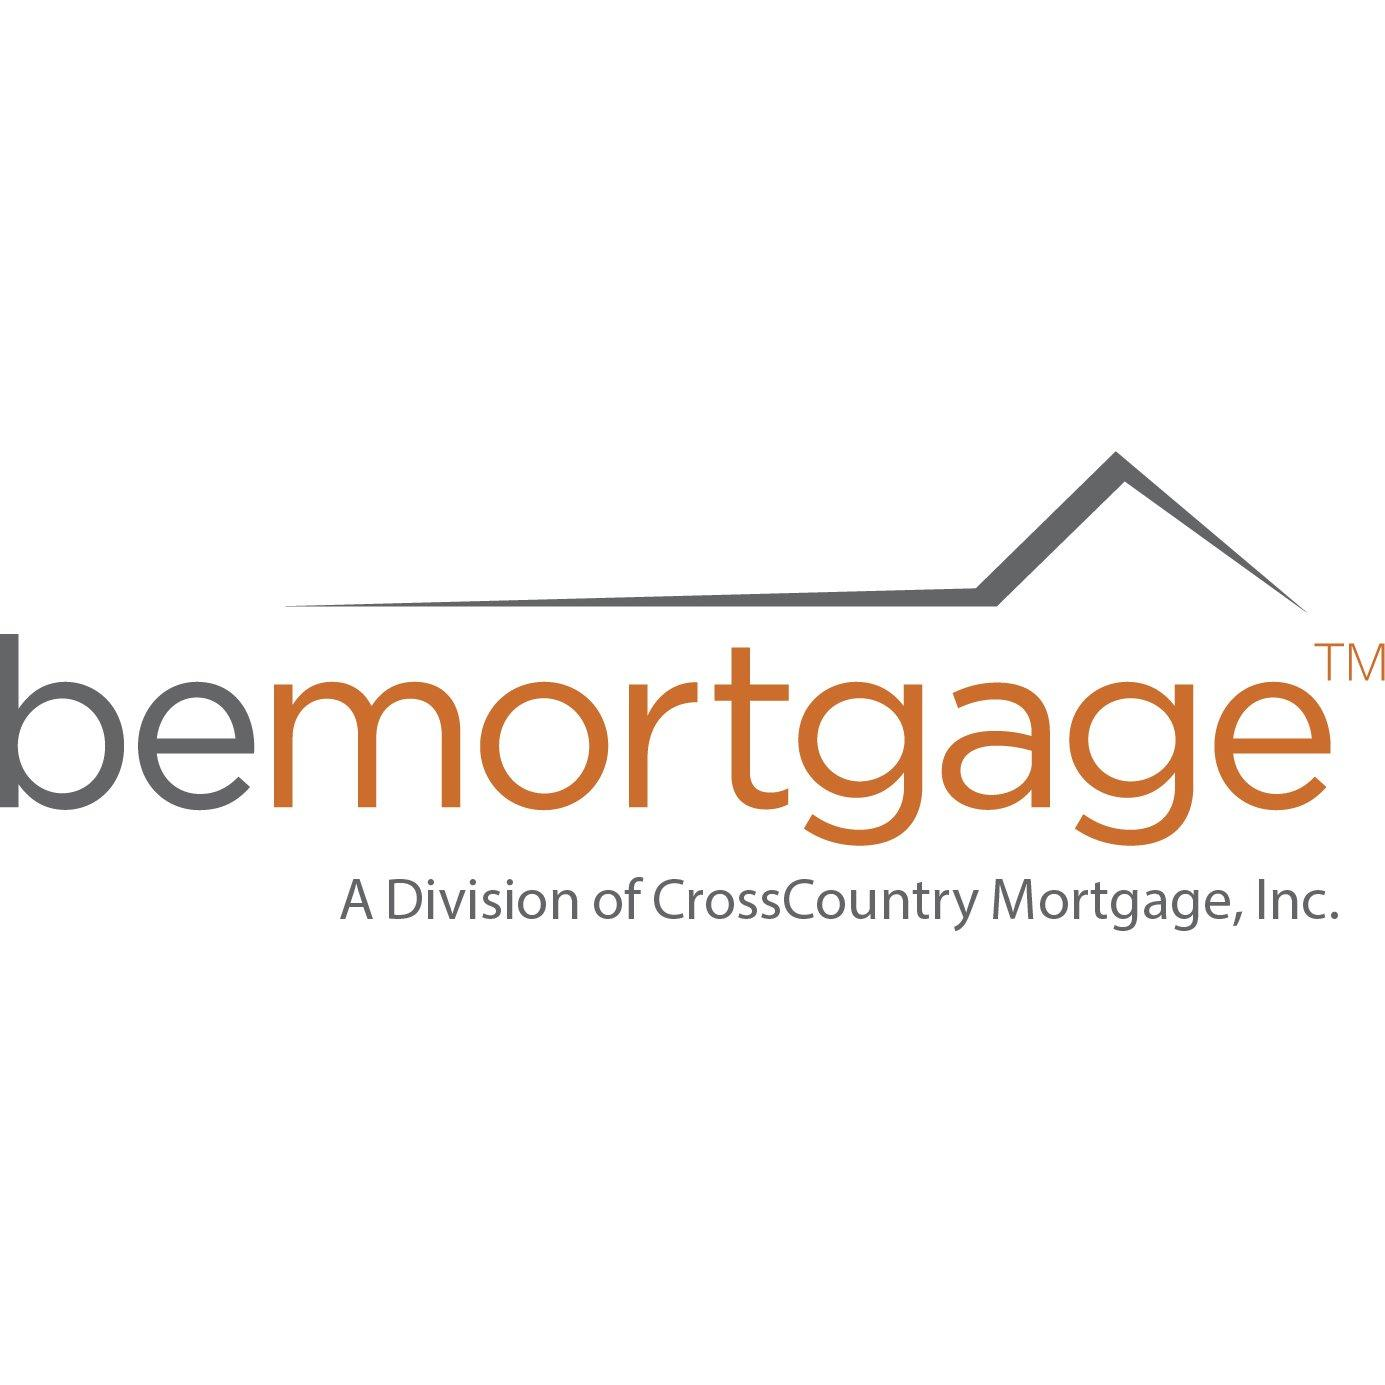 Tony Ranft at bemortgage, A Division of CrossCountry Mortgage, Inc.